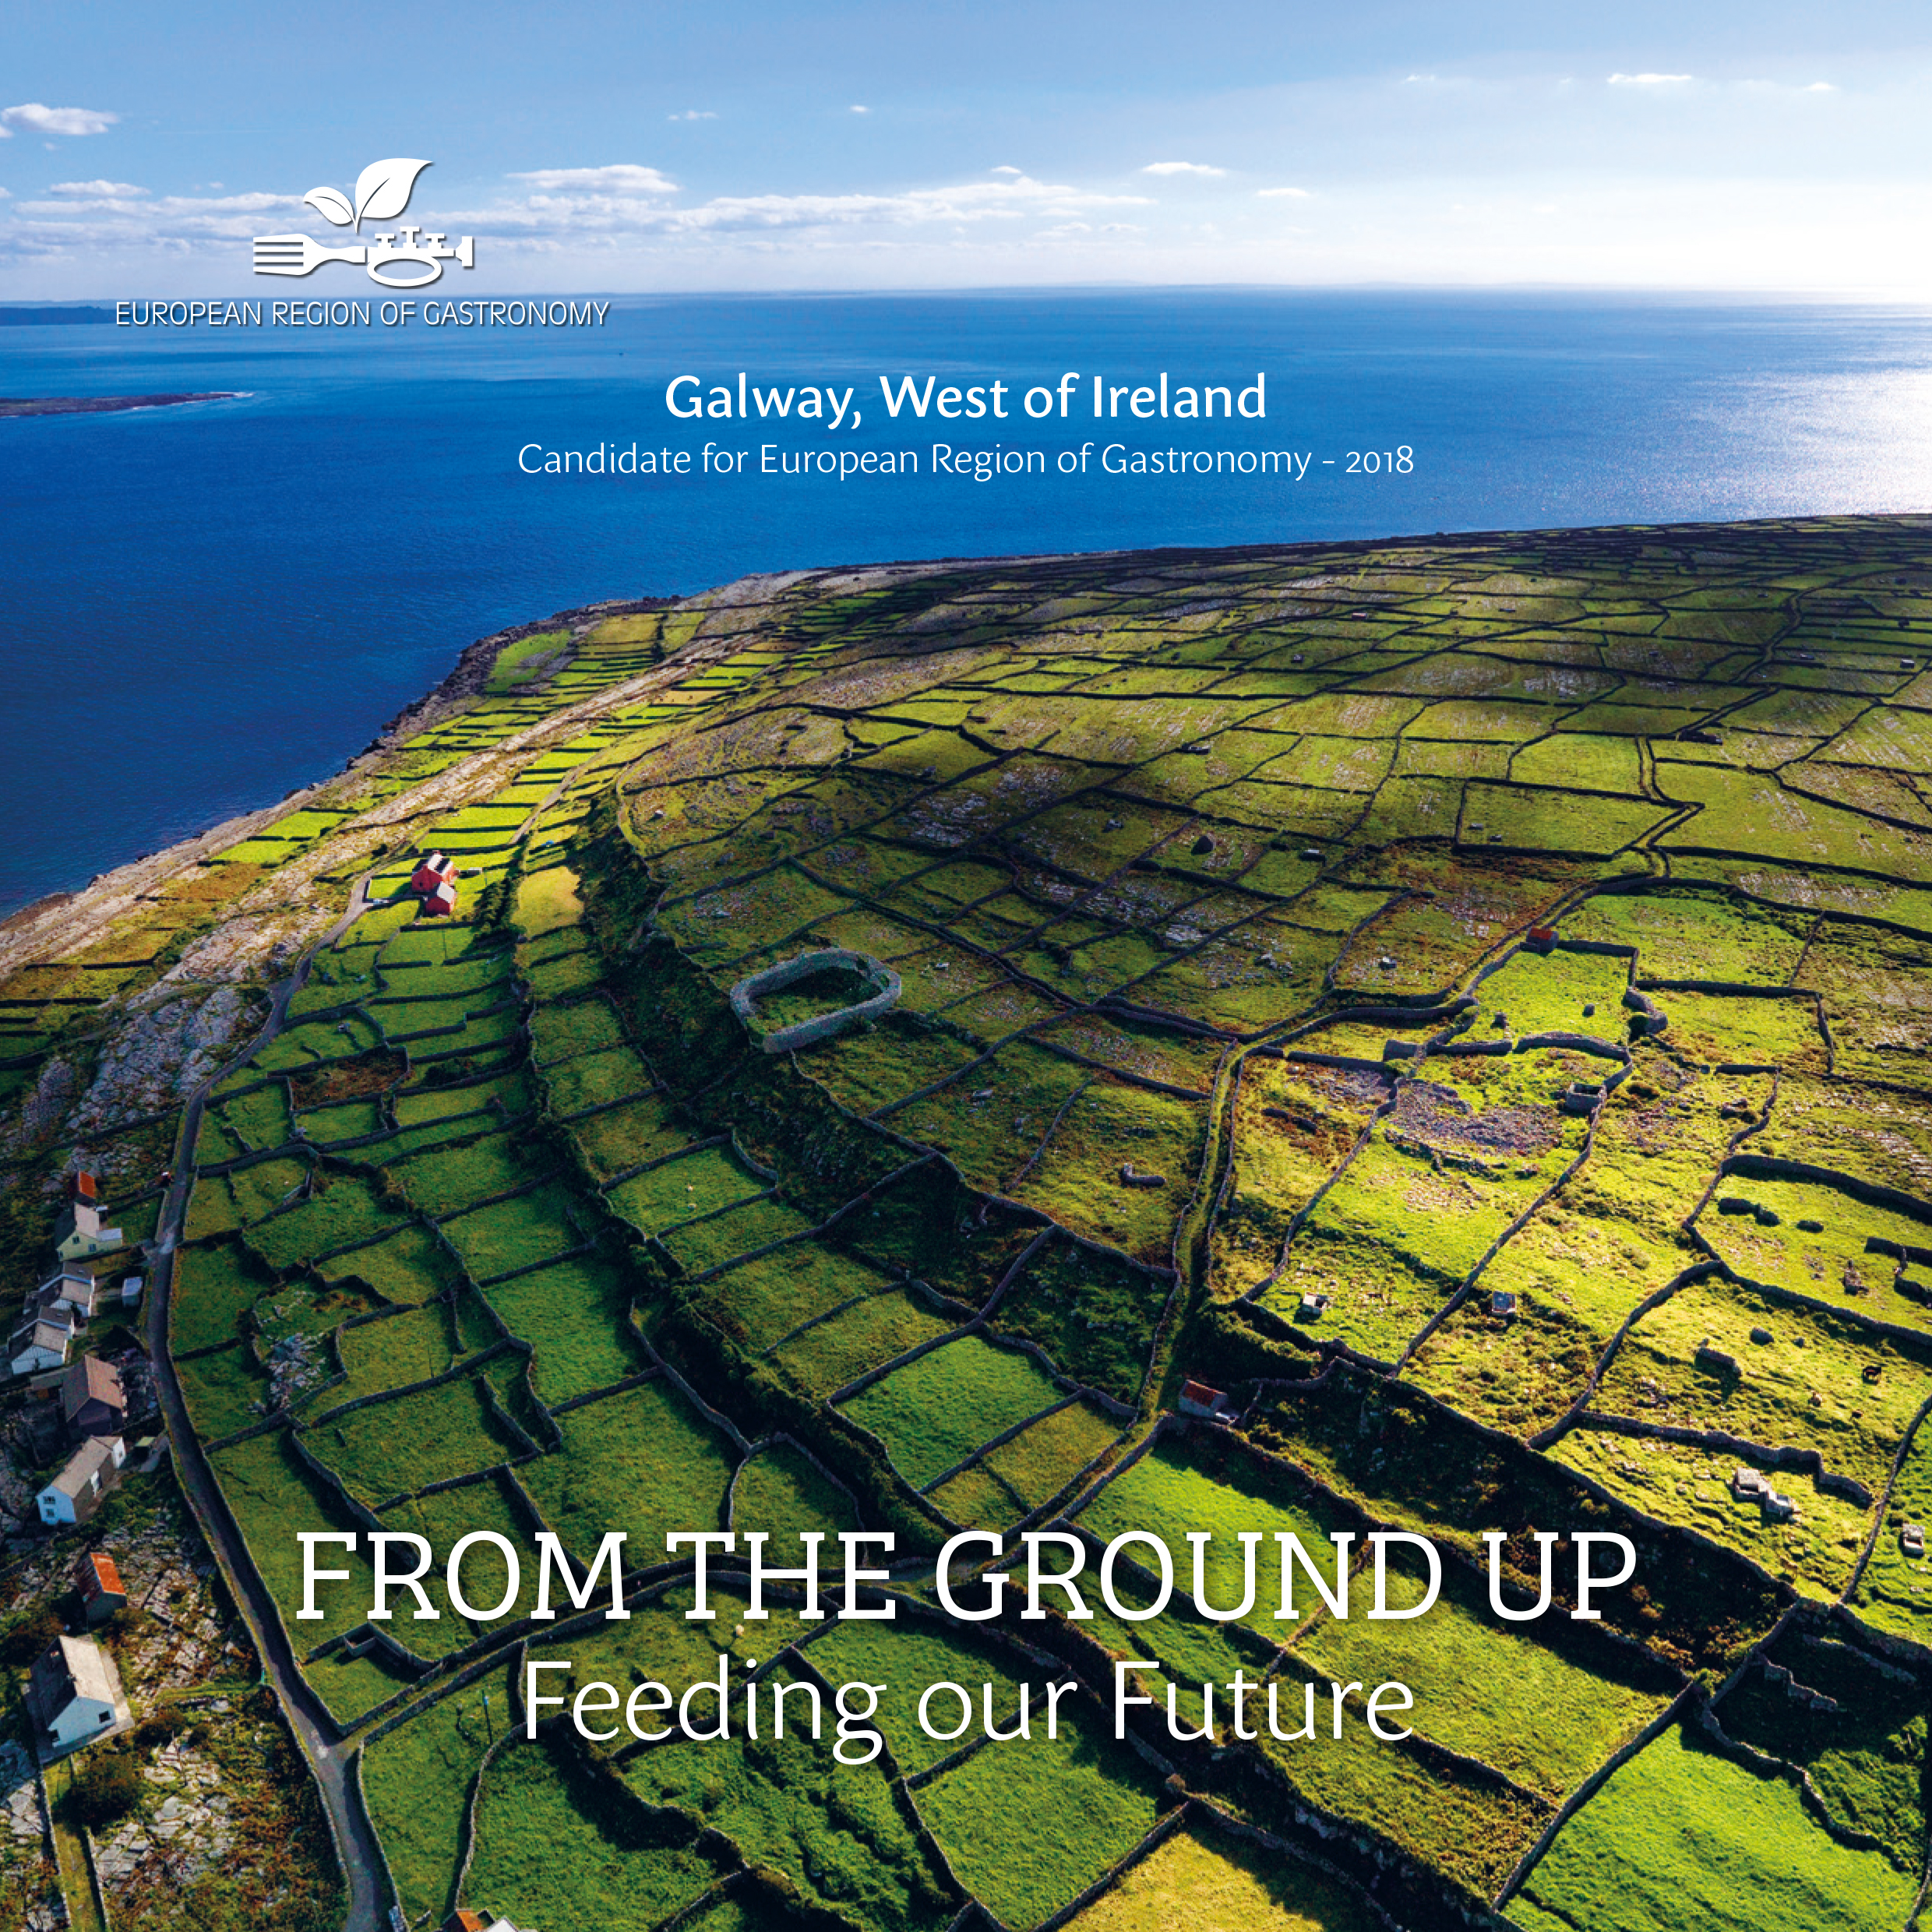 Front Cover Bid Book From the Ground Up - Feeding our Future Bid Book